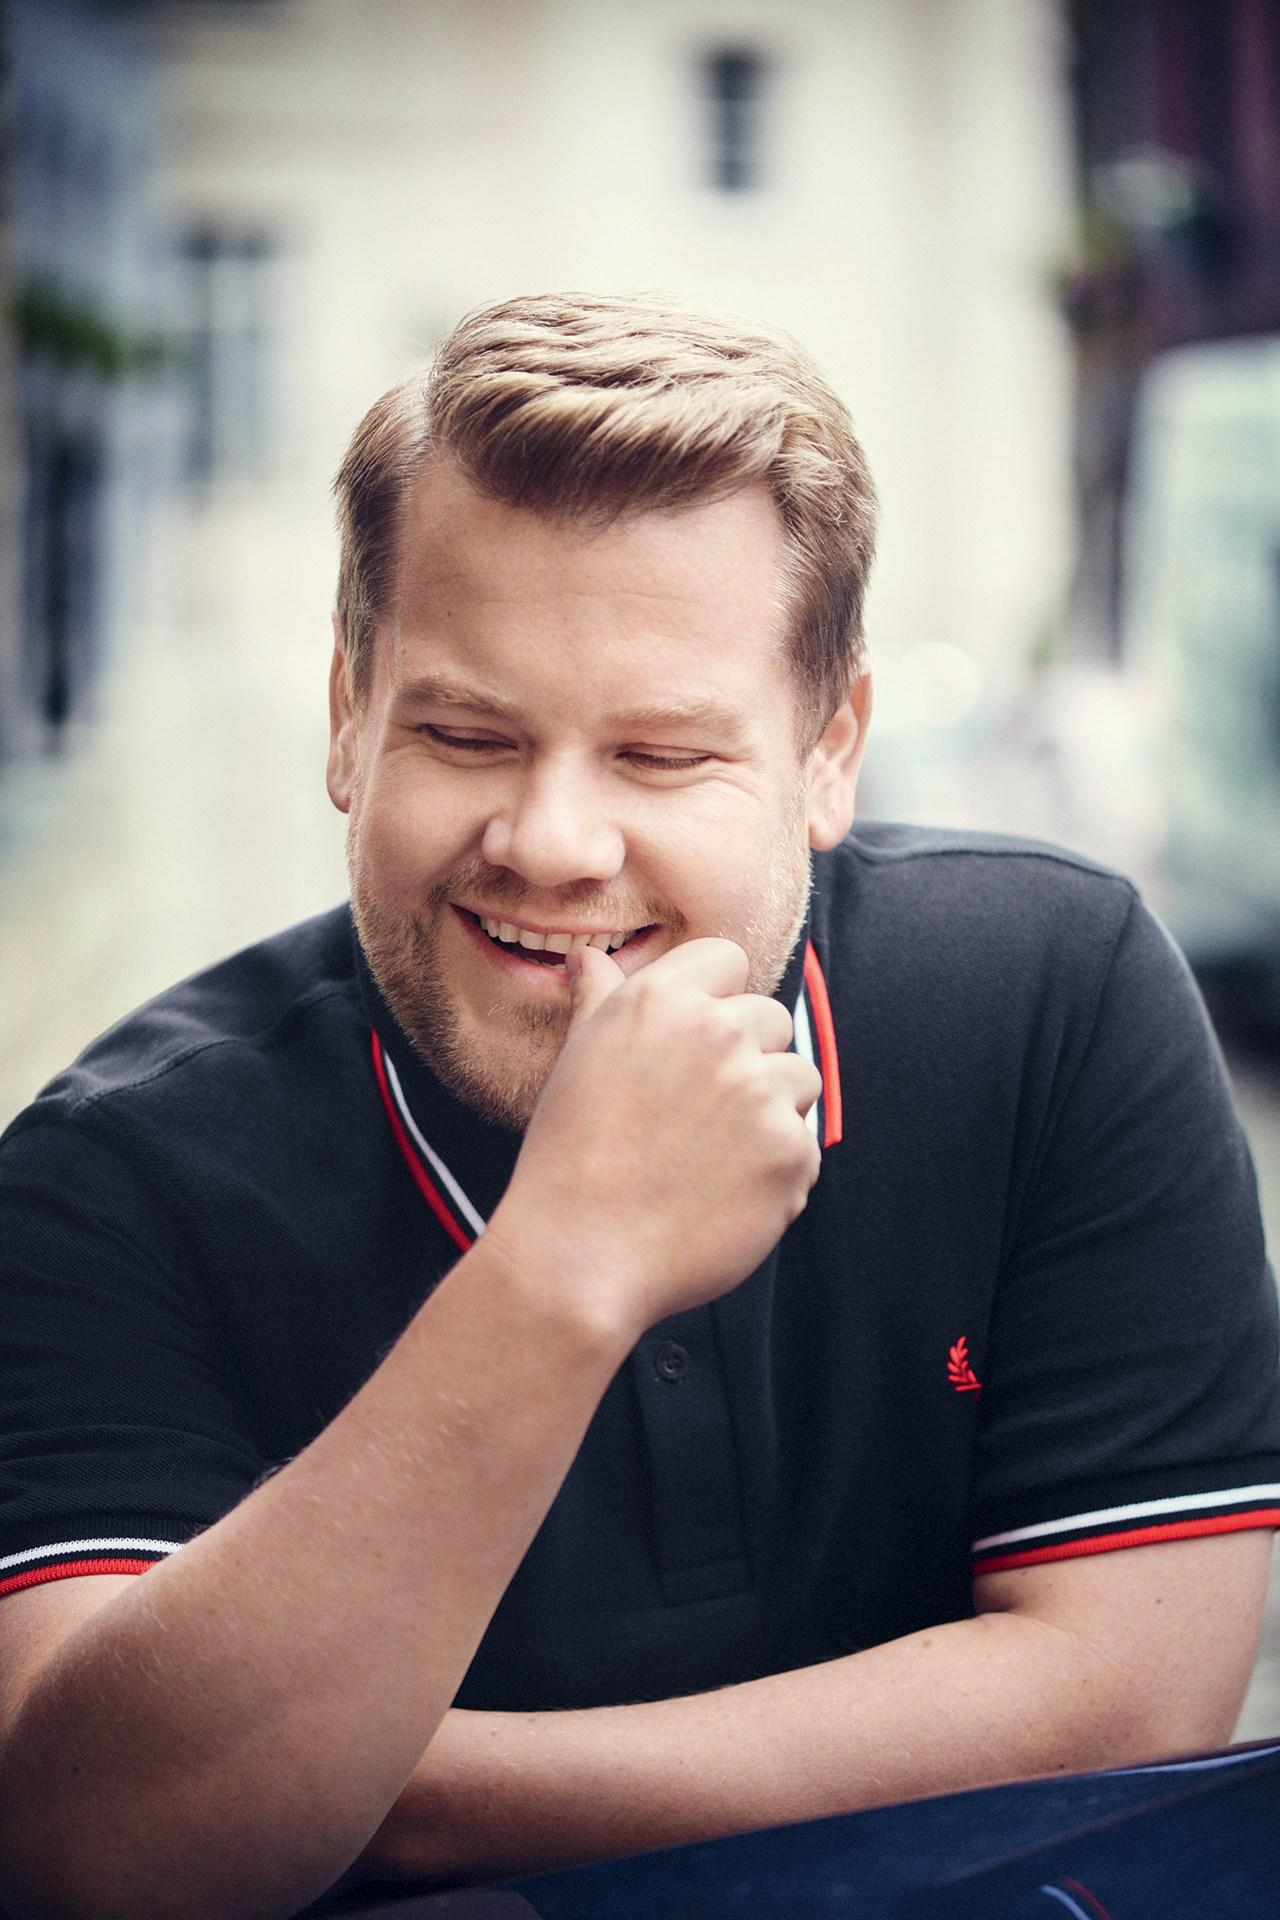 DID YOU SEE: James Corden's Vogue moment: http://t.co/43Fvt553xA http://t.co/6eWAmbvDyw